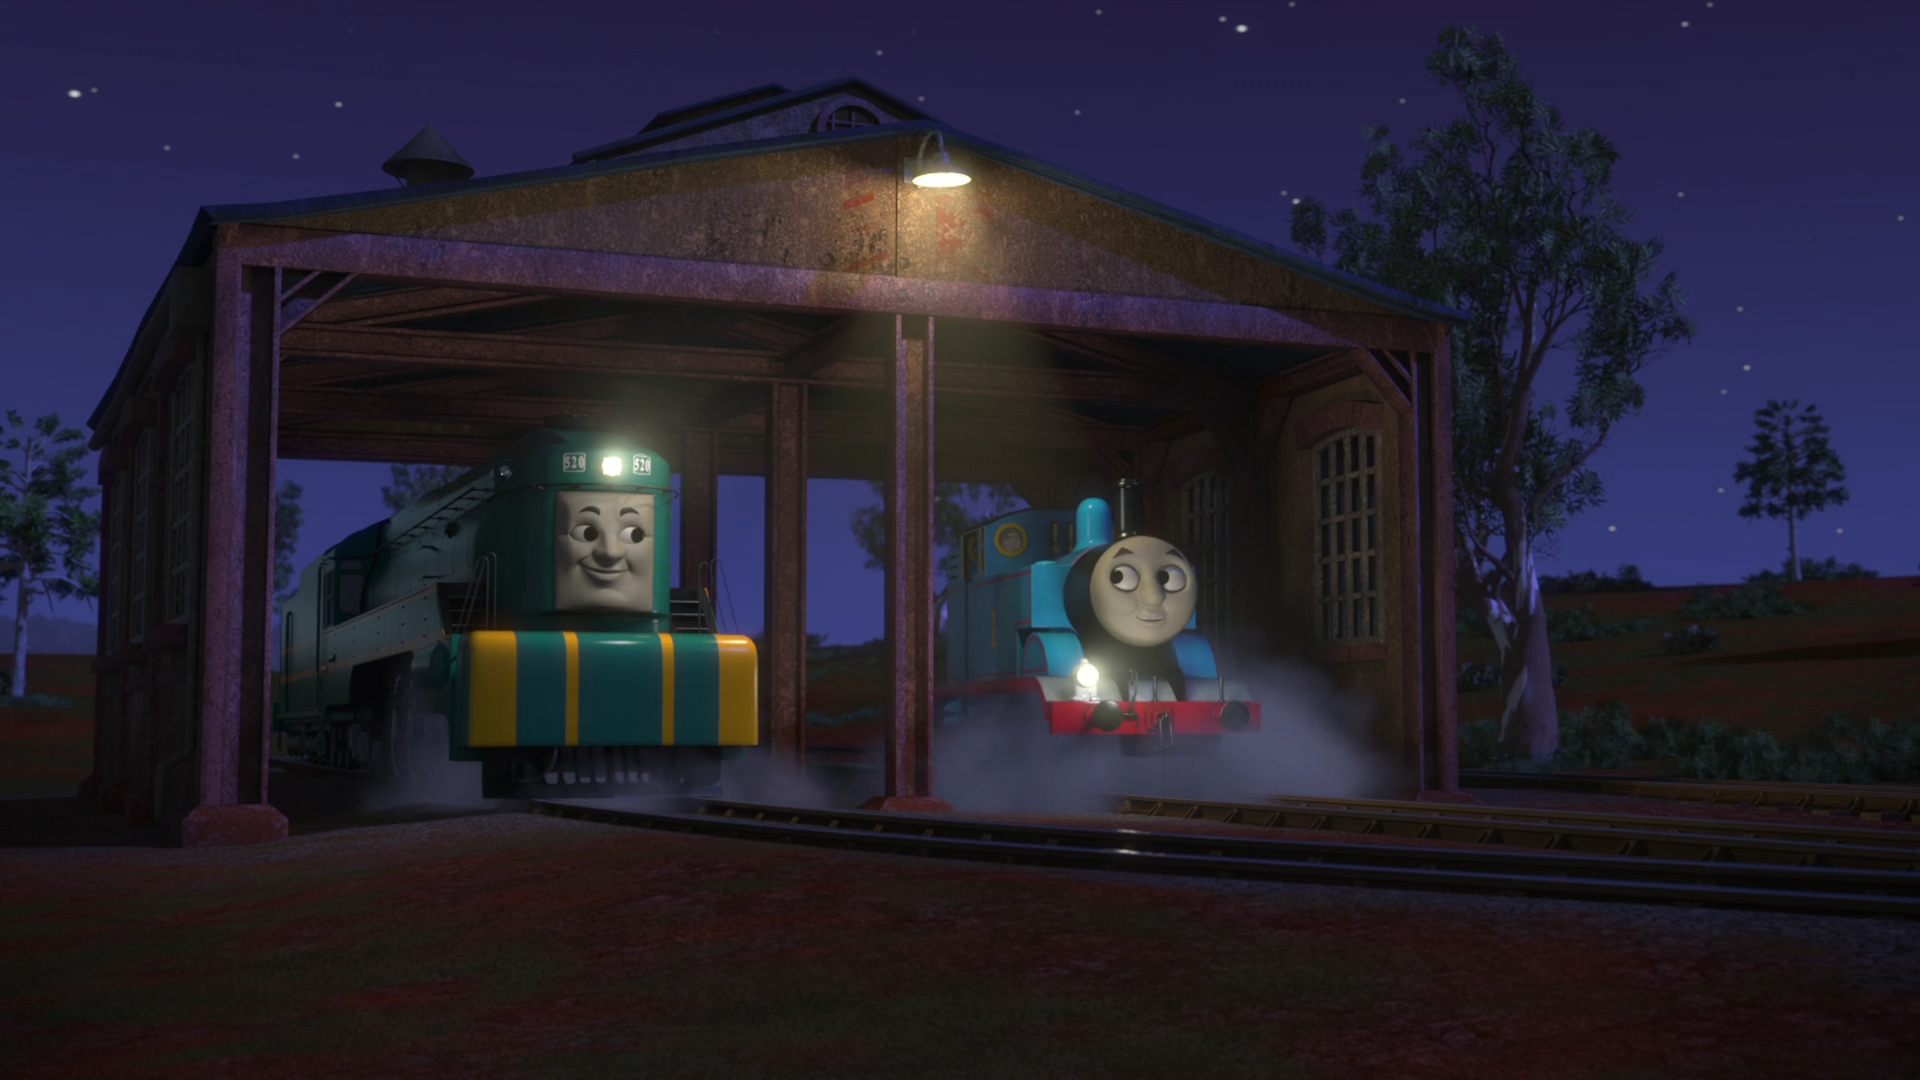 Shane's Shed